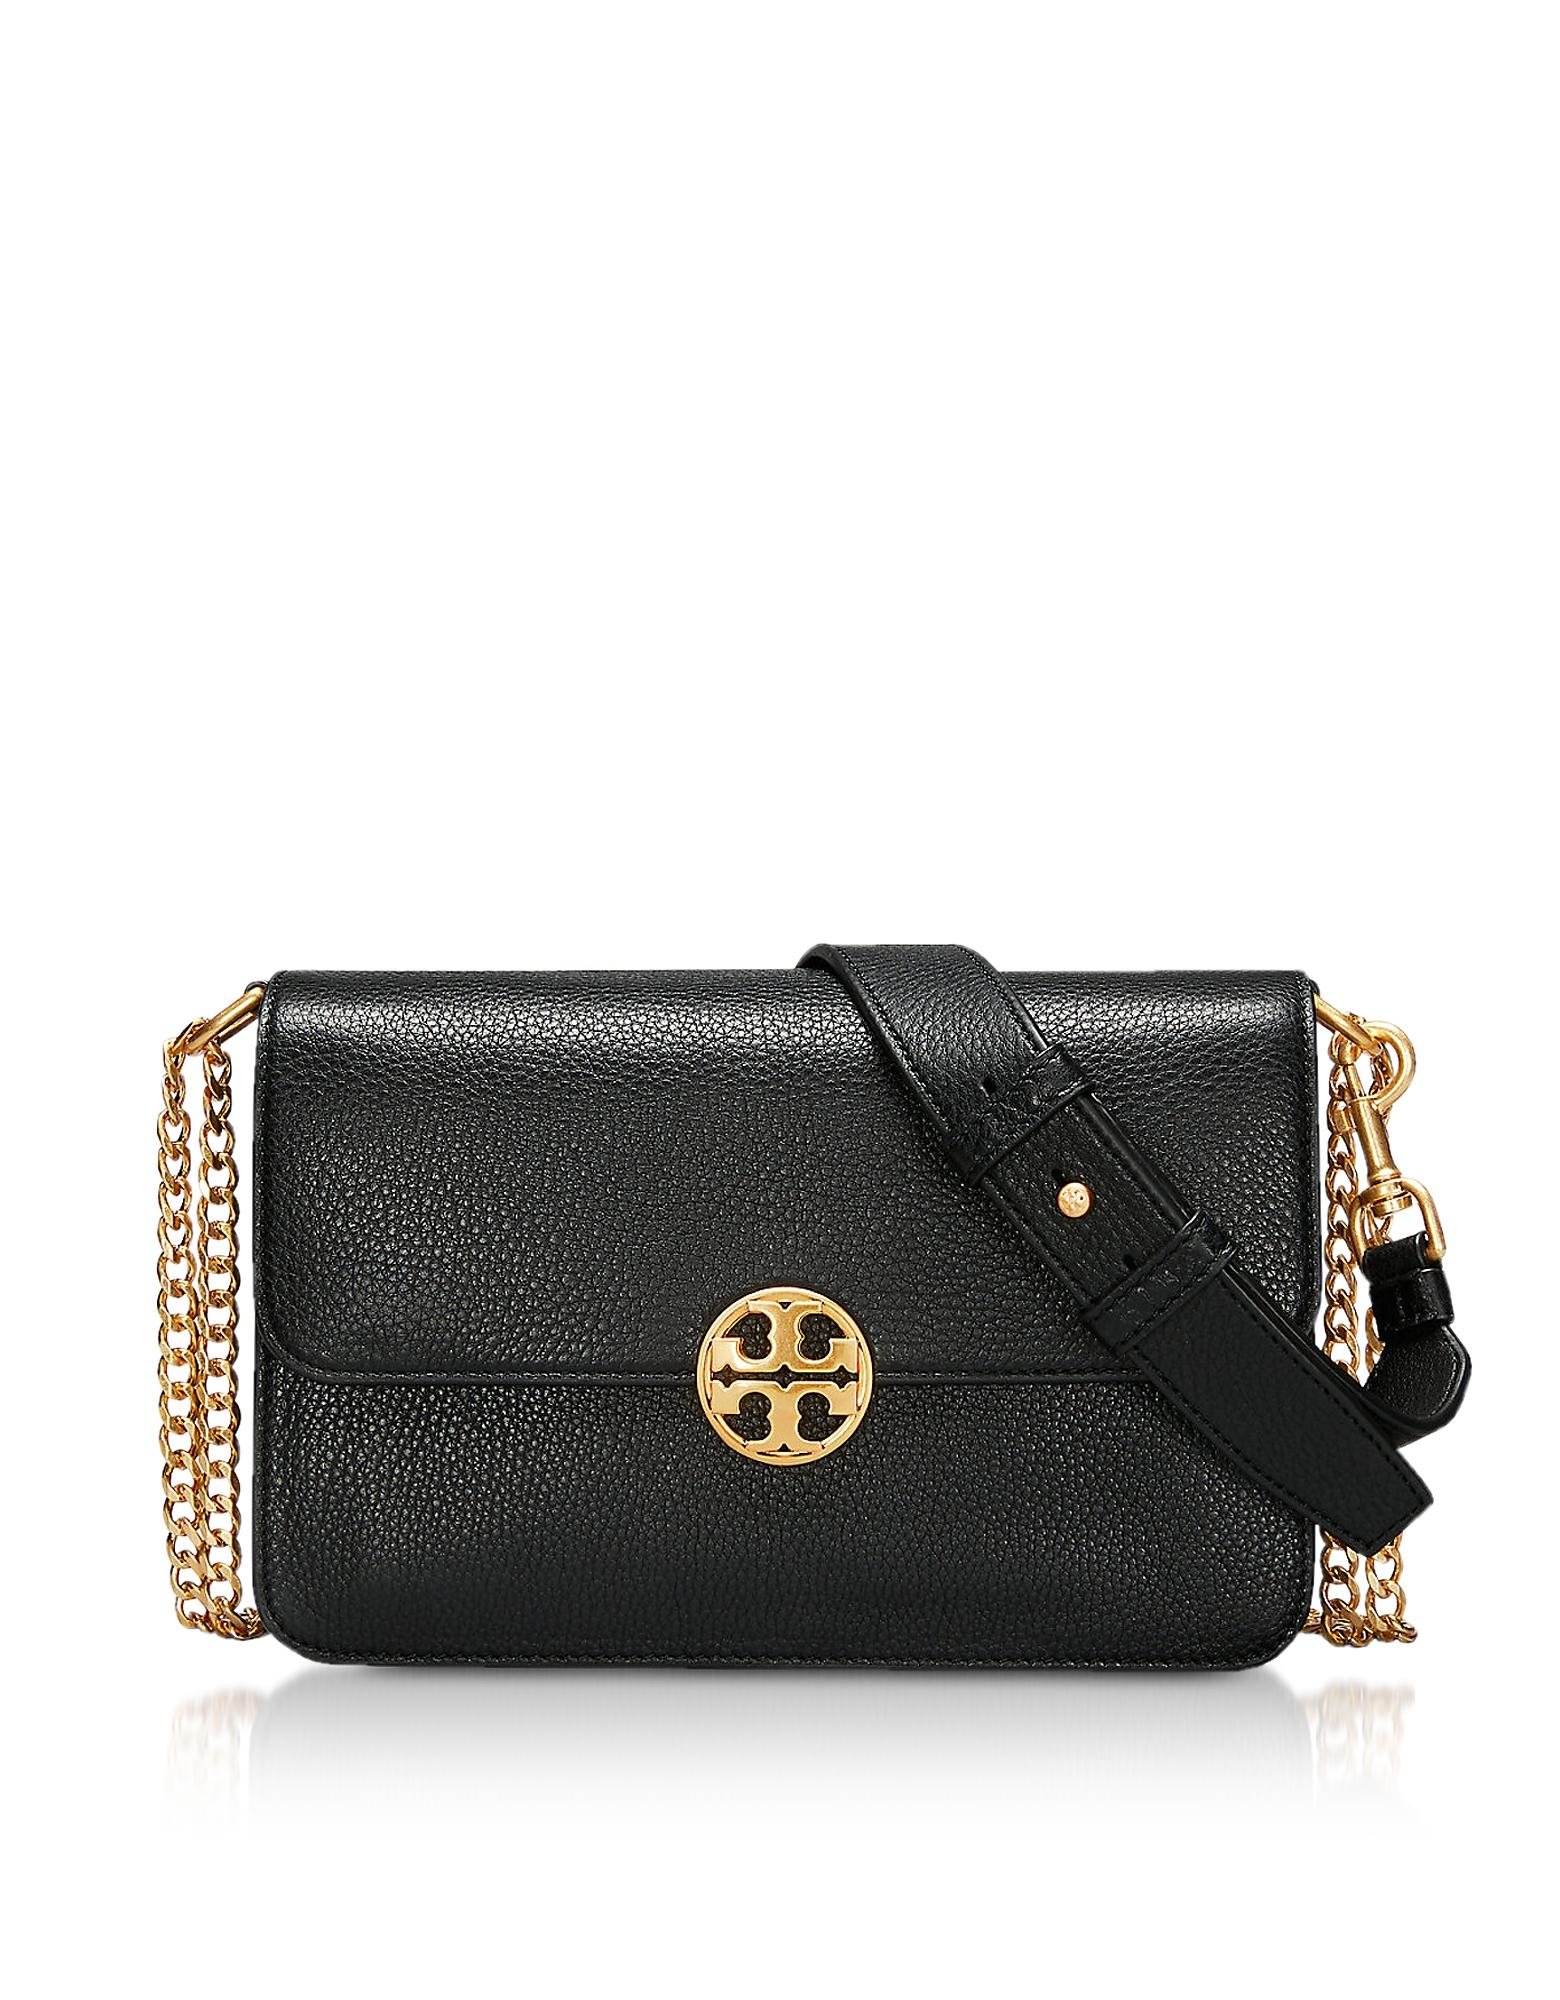 8a4a94aaa6a9 Tory Burch Black Leather Chelsea Convertible Shoulder Bag In Black Gold